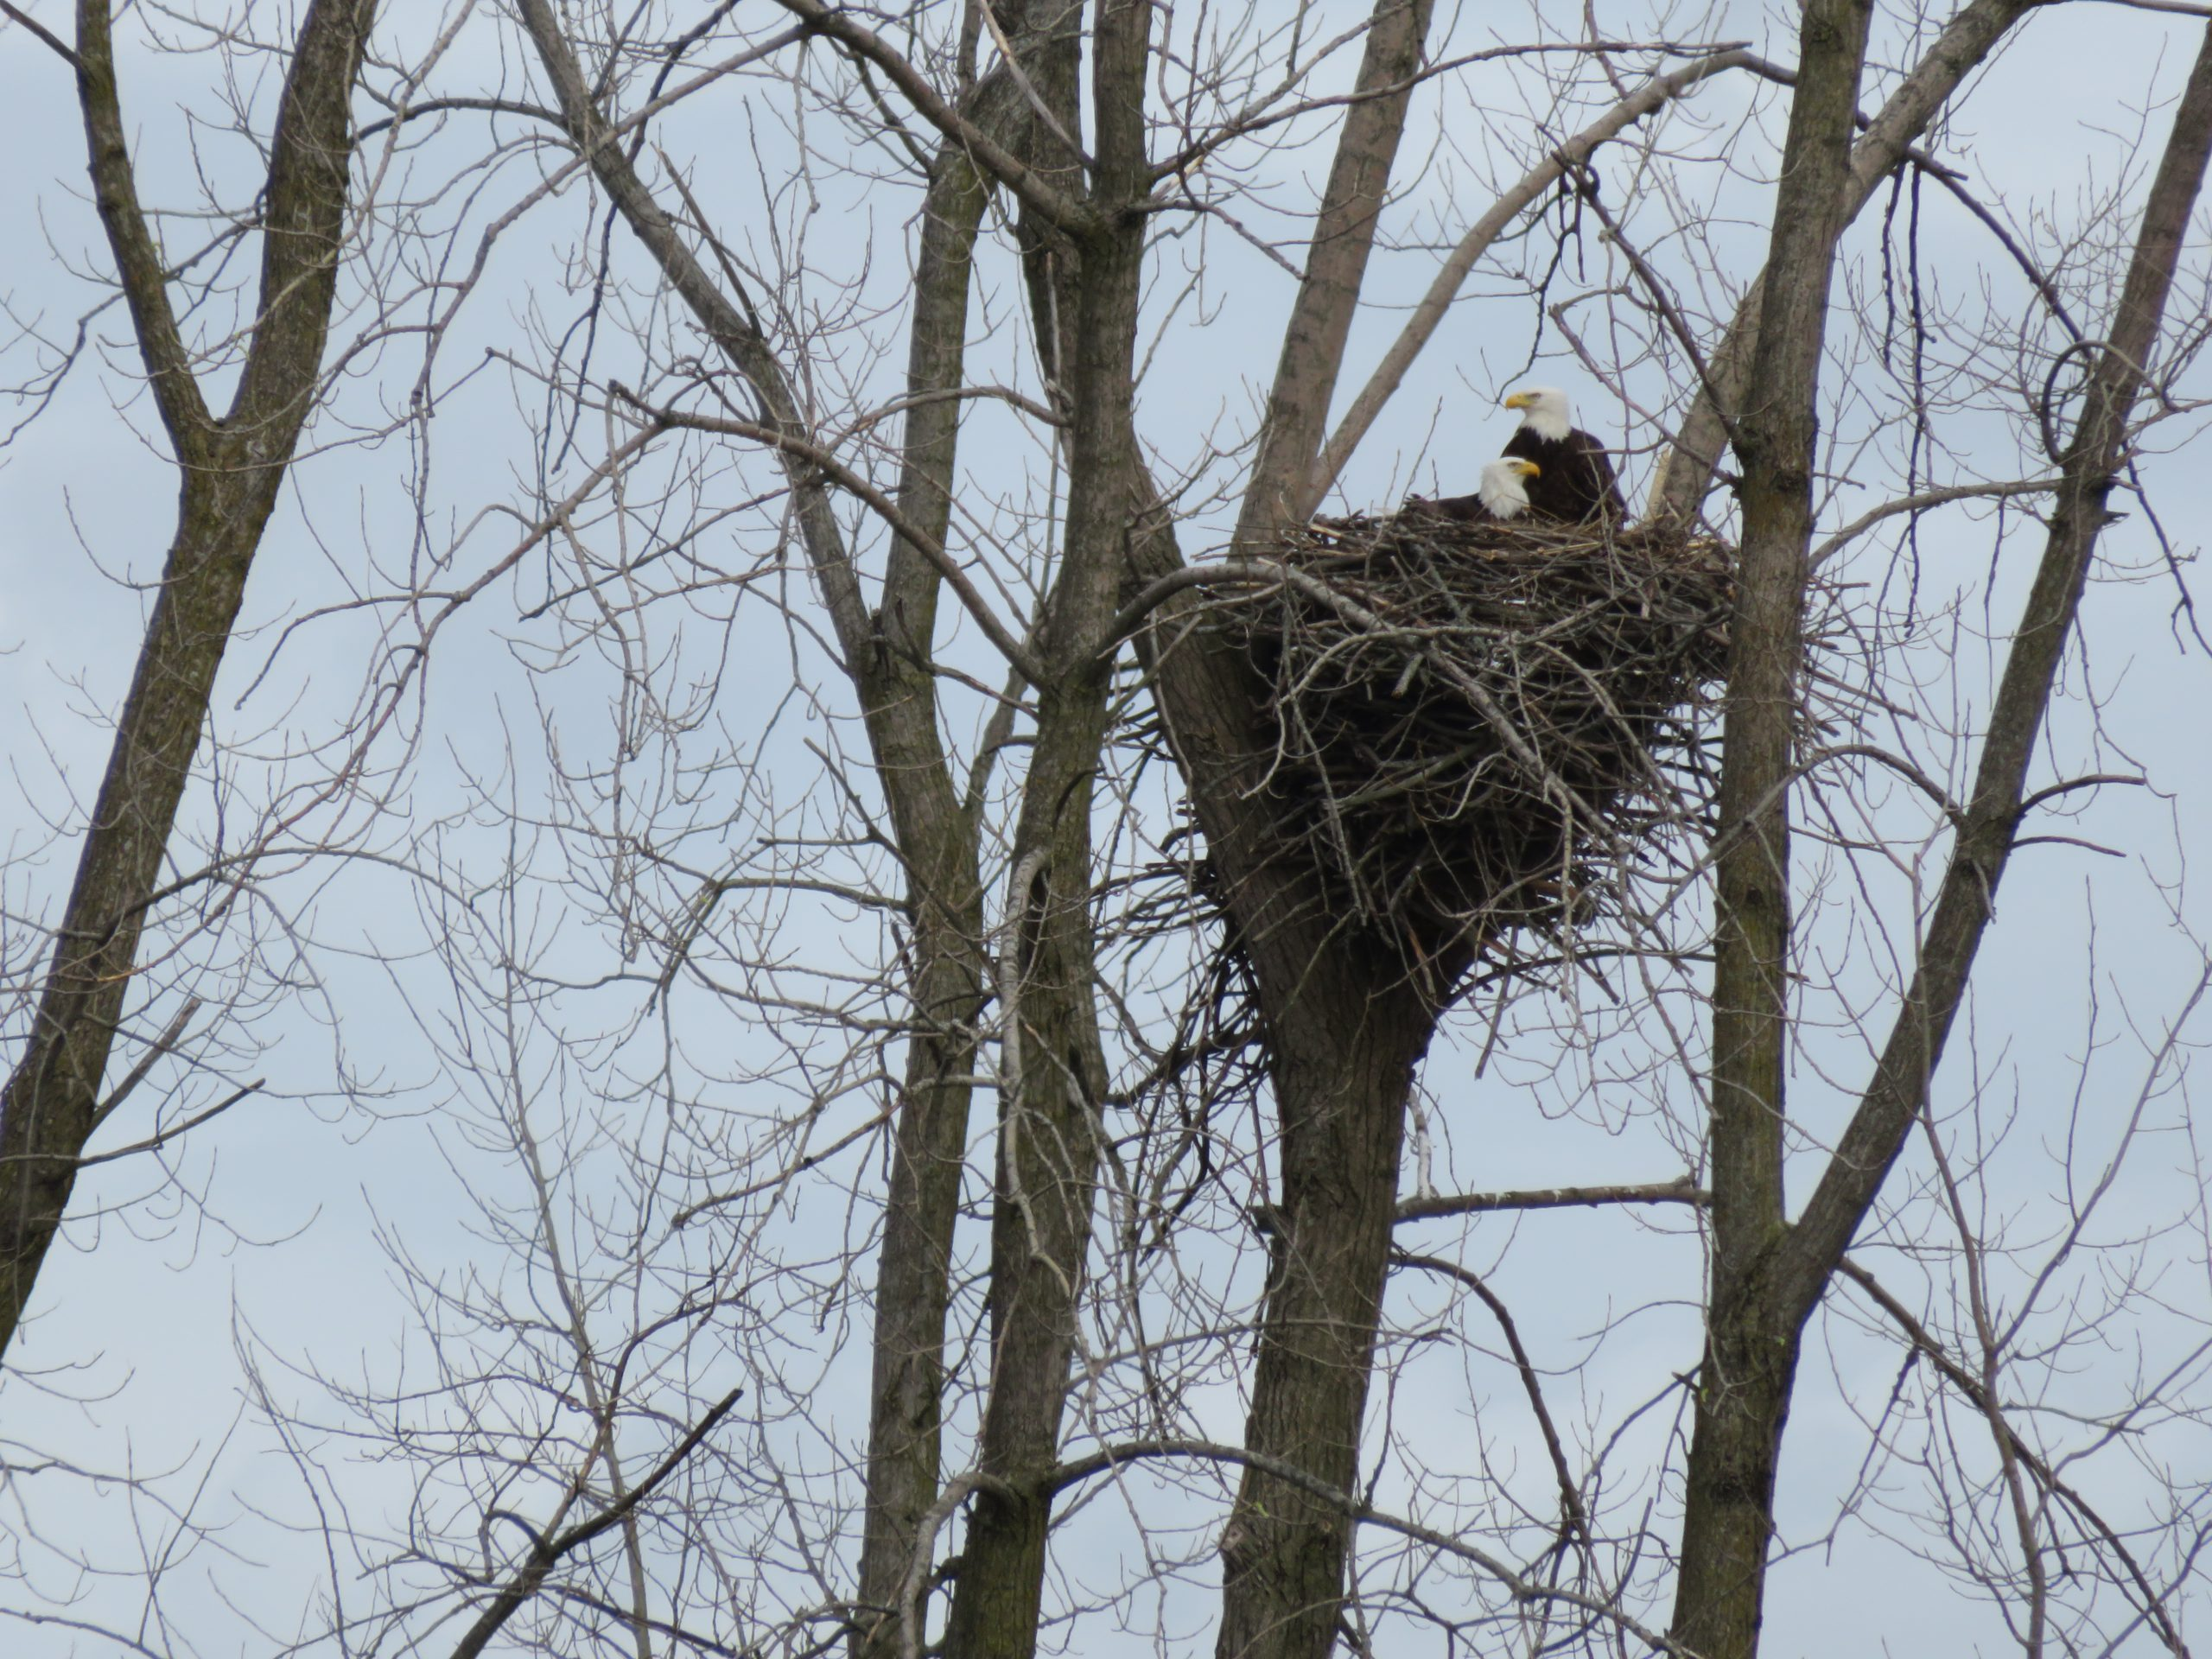 Two bald eagles nesting.